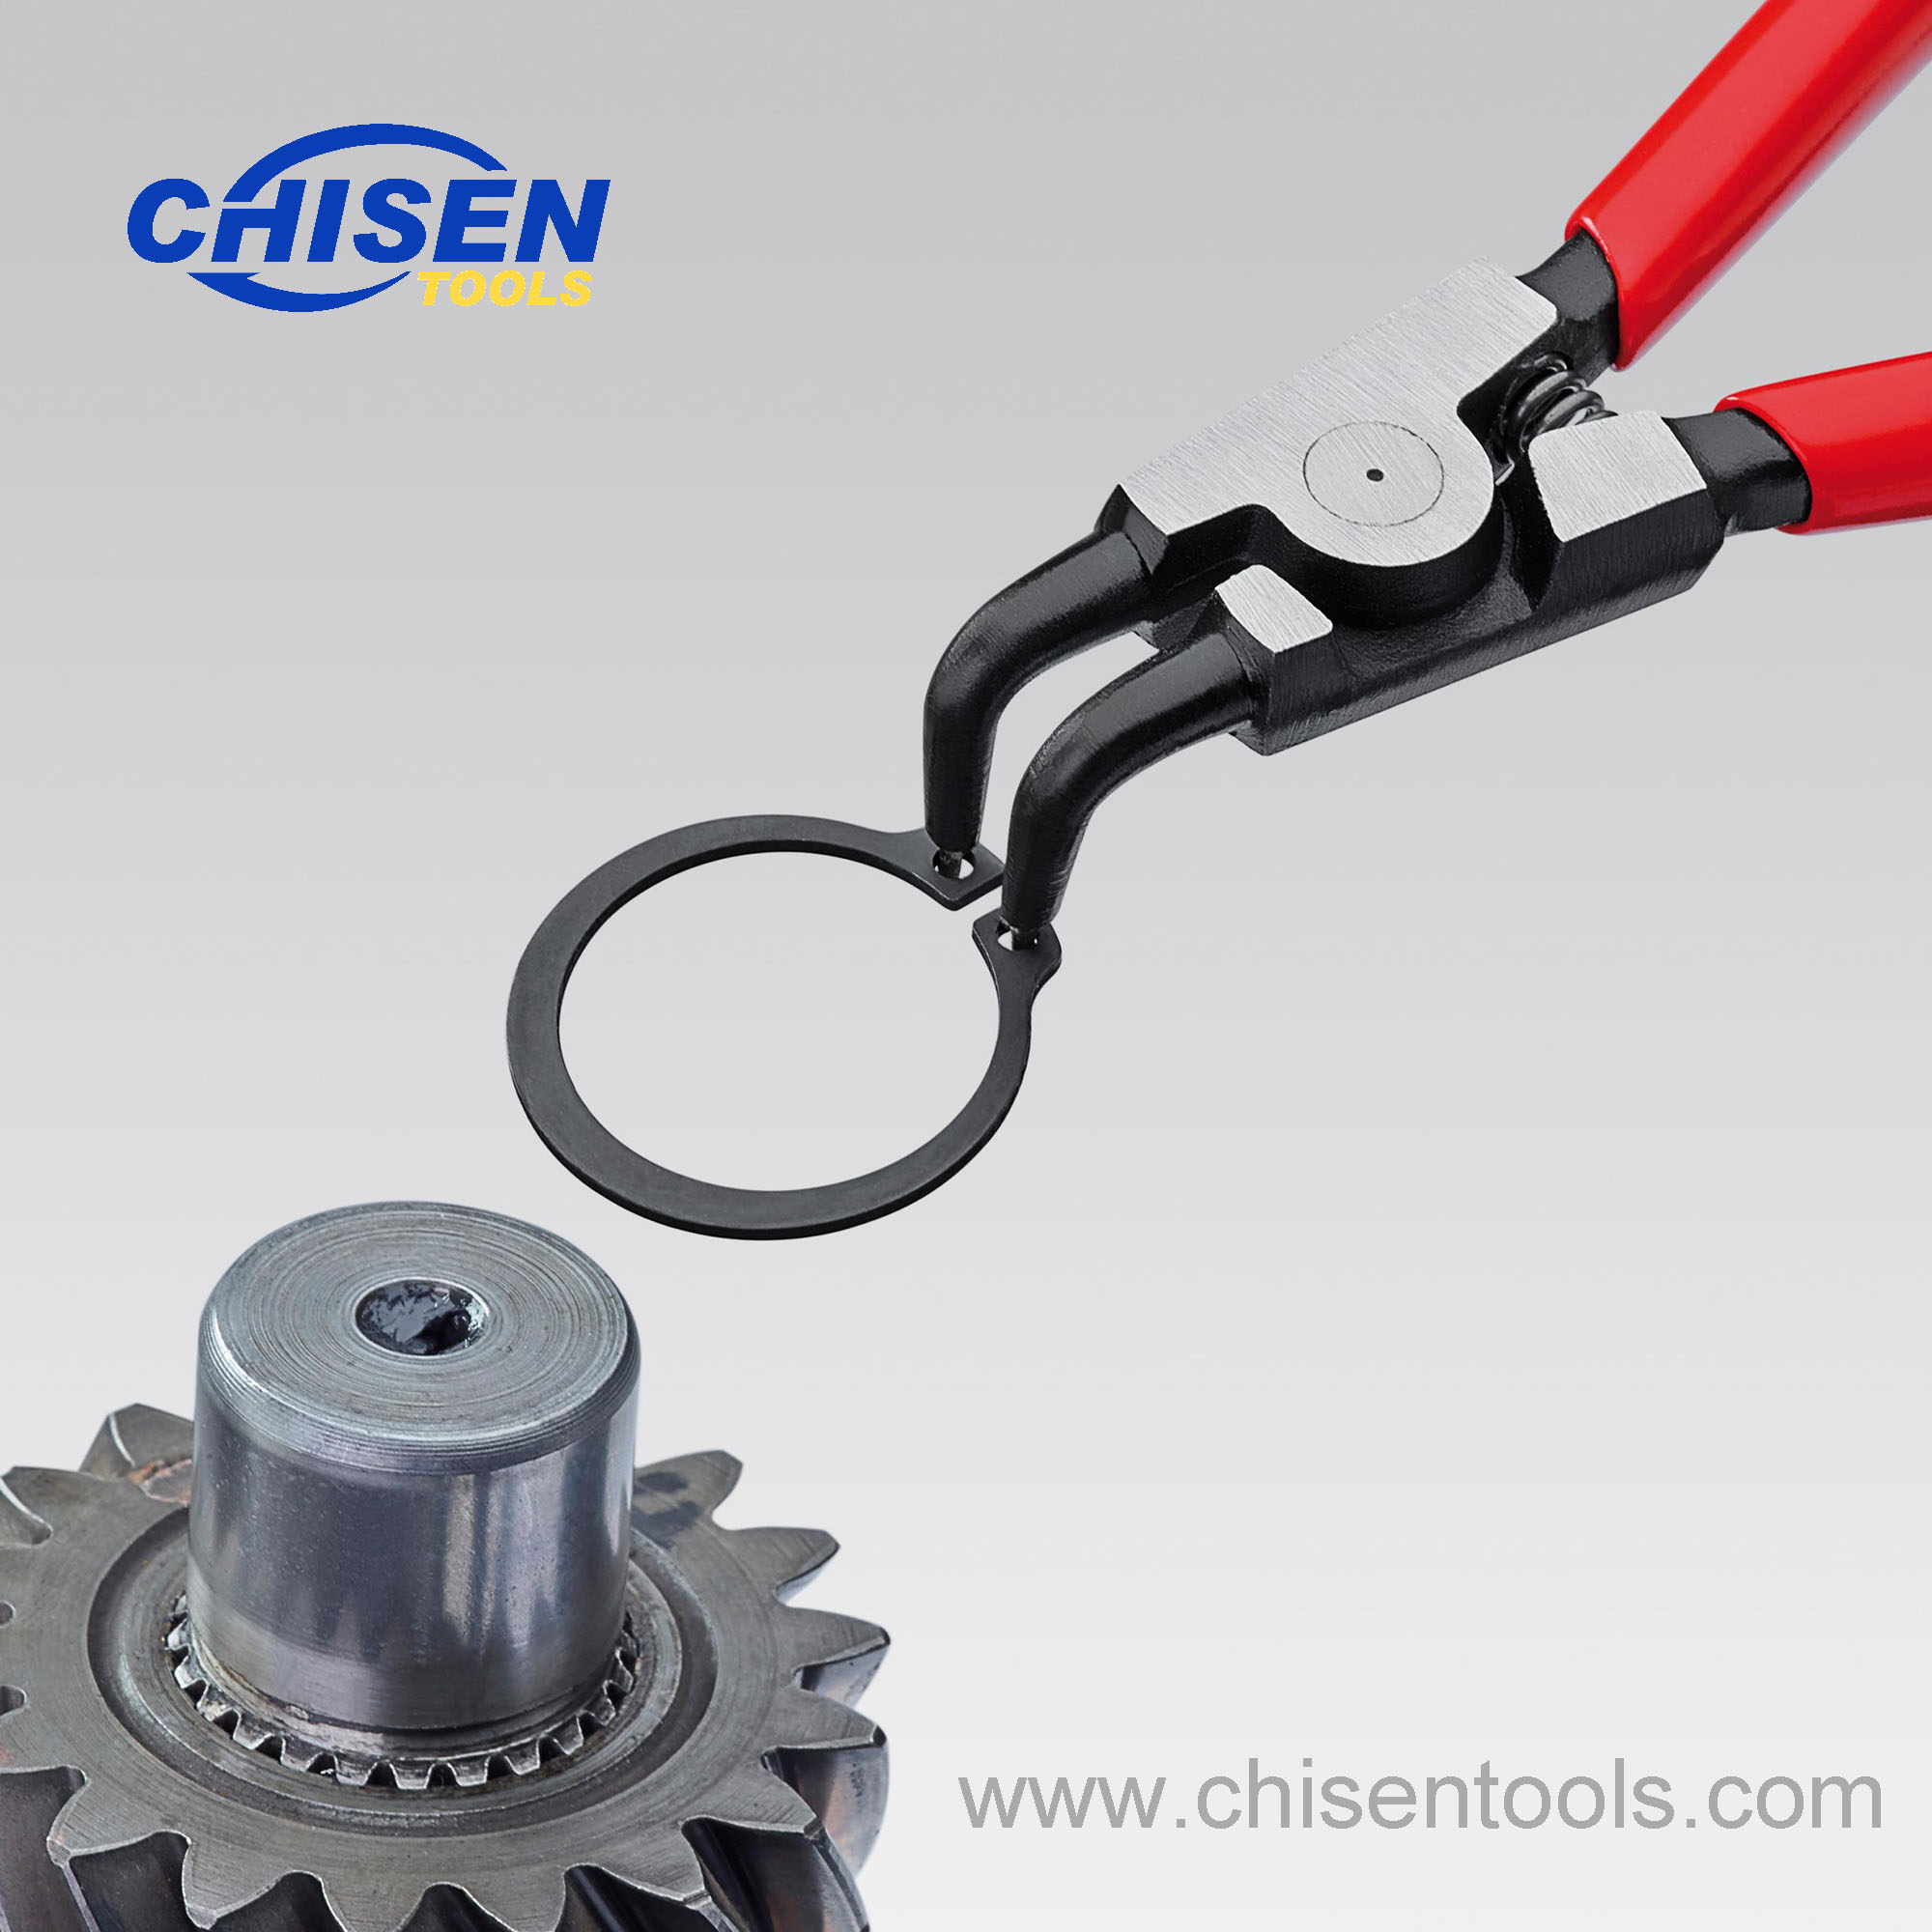 Useage of Industrial Grade External Snap Ring Pliers